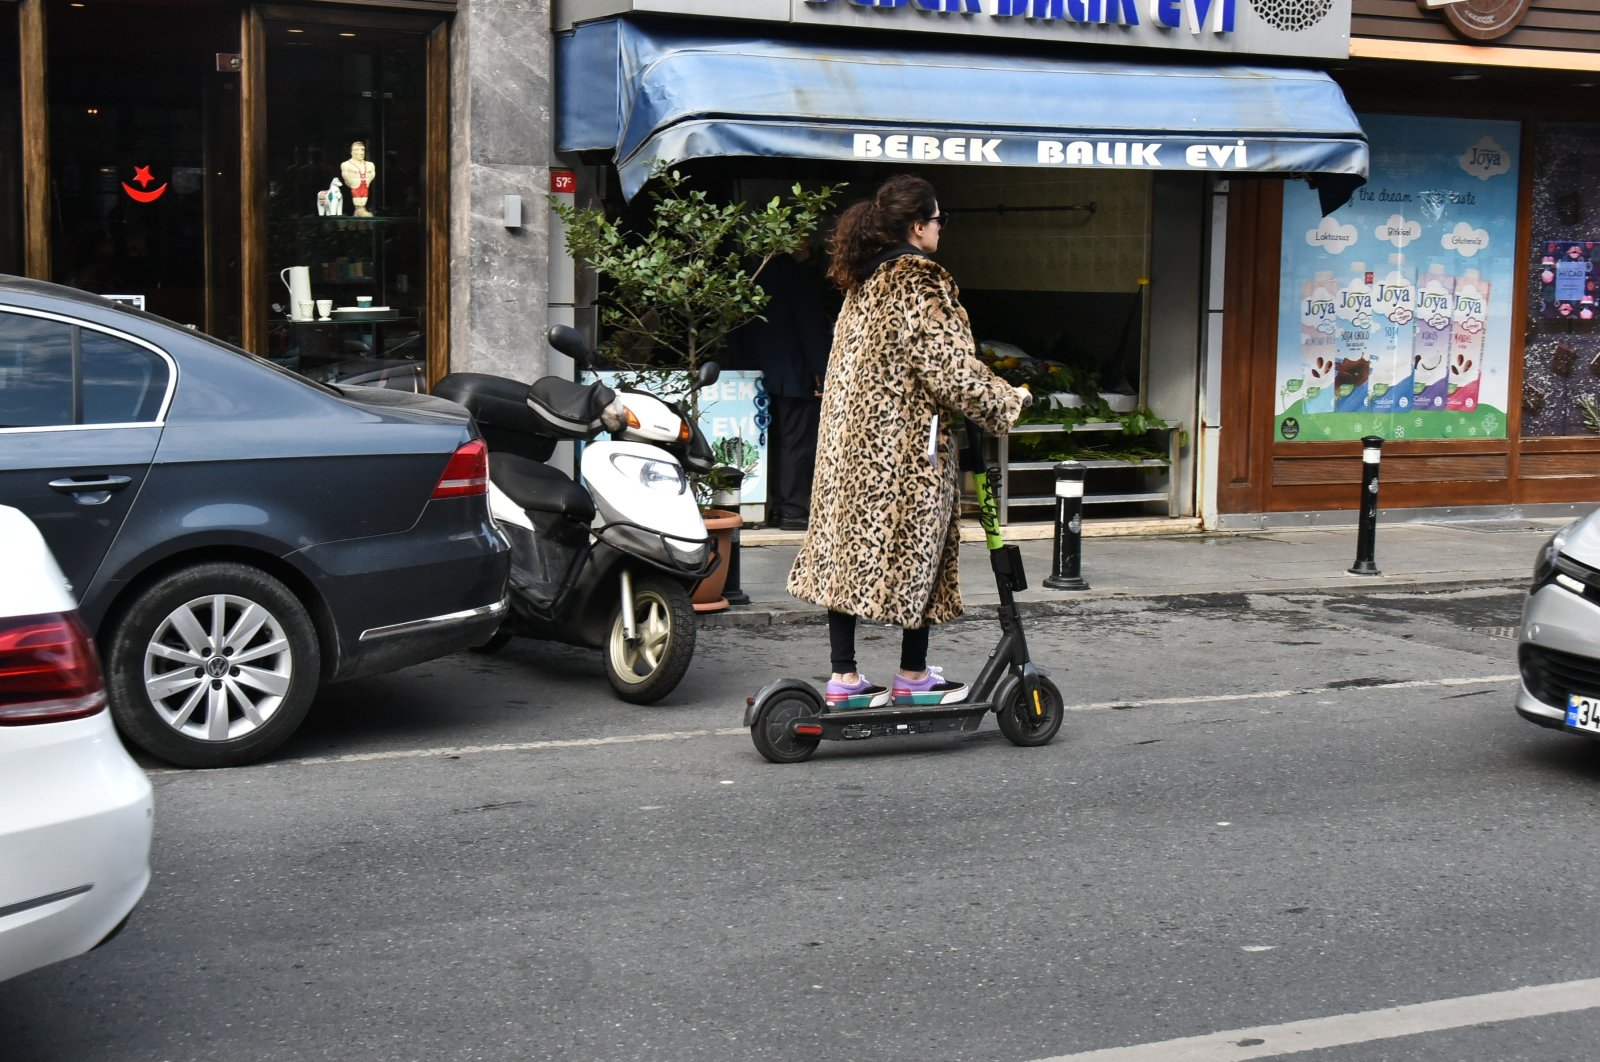 A woman rides an e-scooter in Istanbul, Turkey, Nov. 30, 2019. (Photo by Ali Keser)